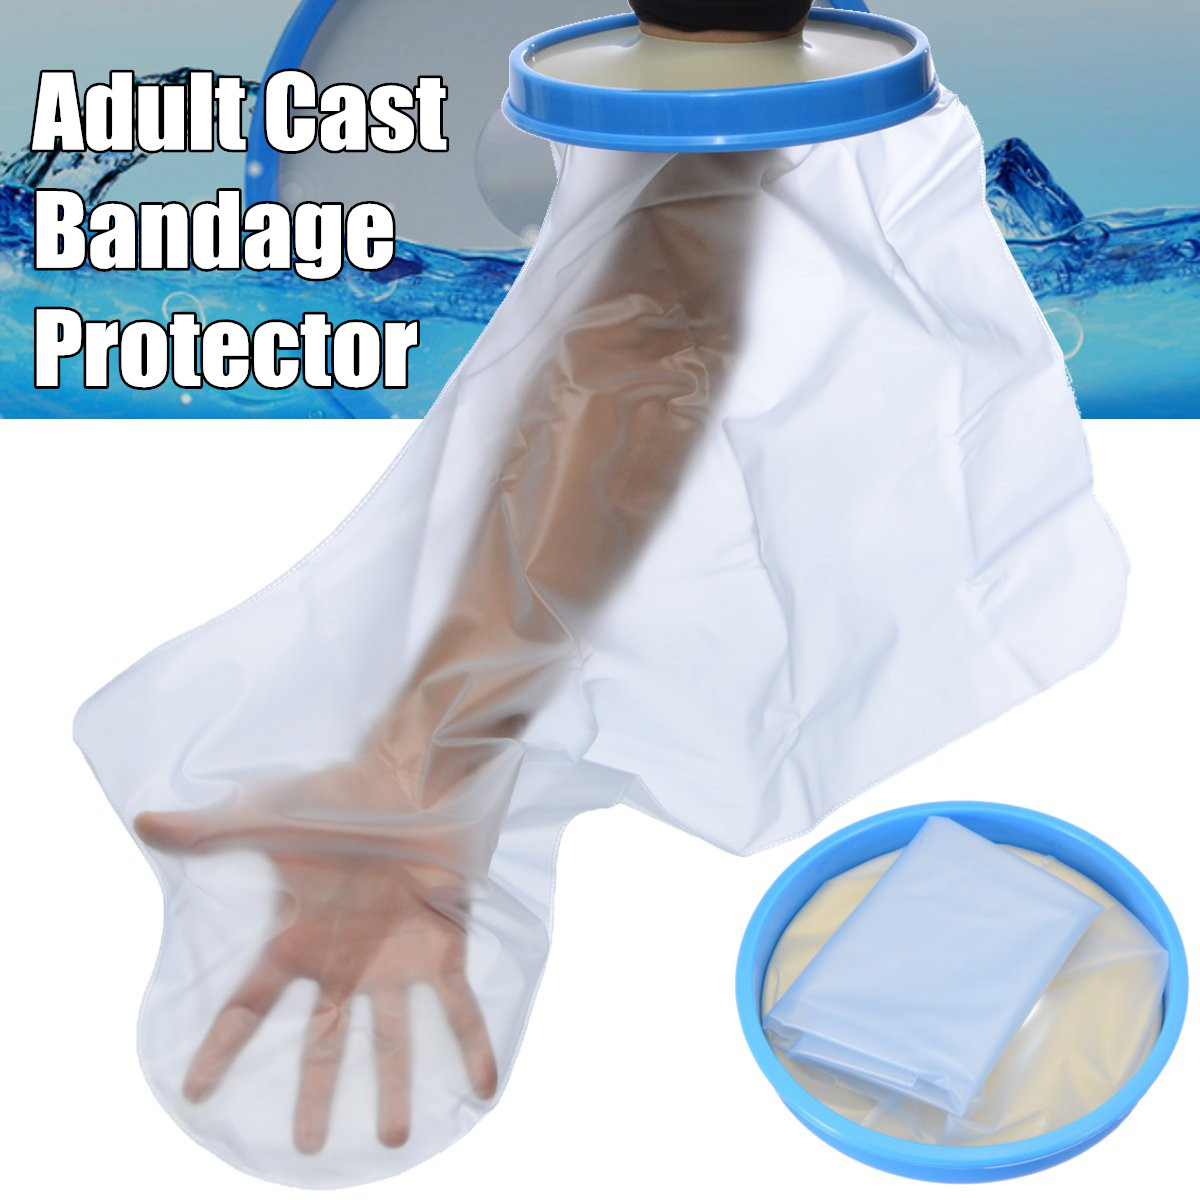 Waterproof Seal Cast Bandage Protector Cover Arm Hand Leg Knee Keep Dry for Shower Bath